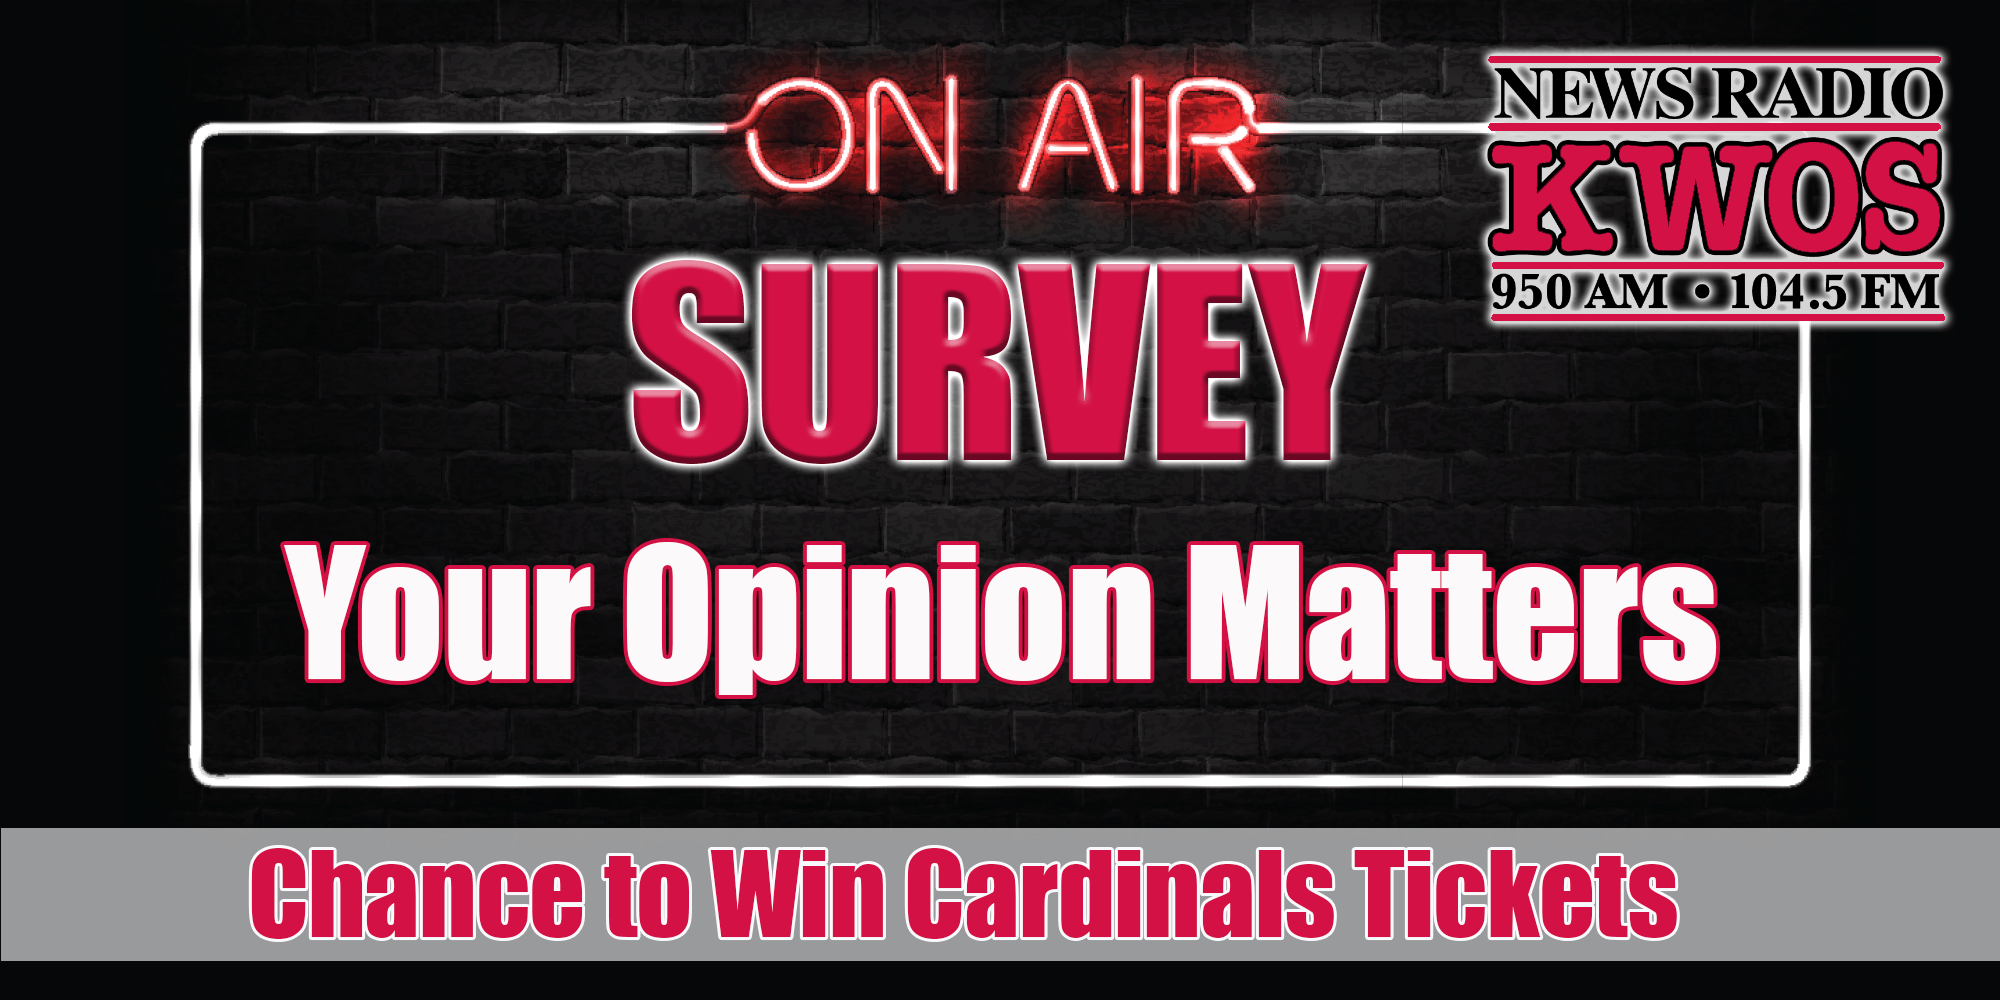 Win Free Cardinals Tickets! – KWOS